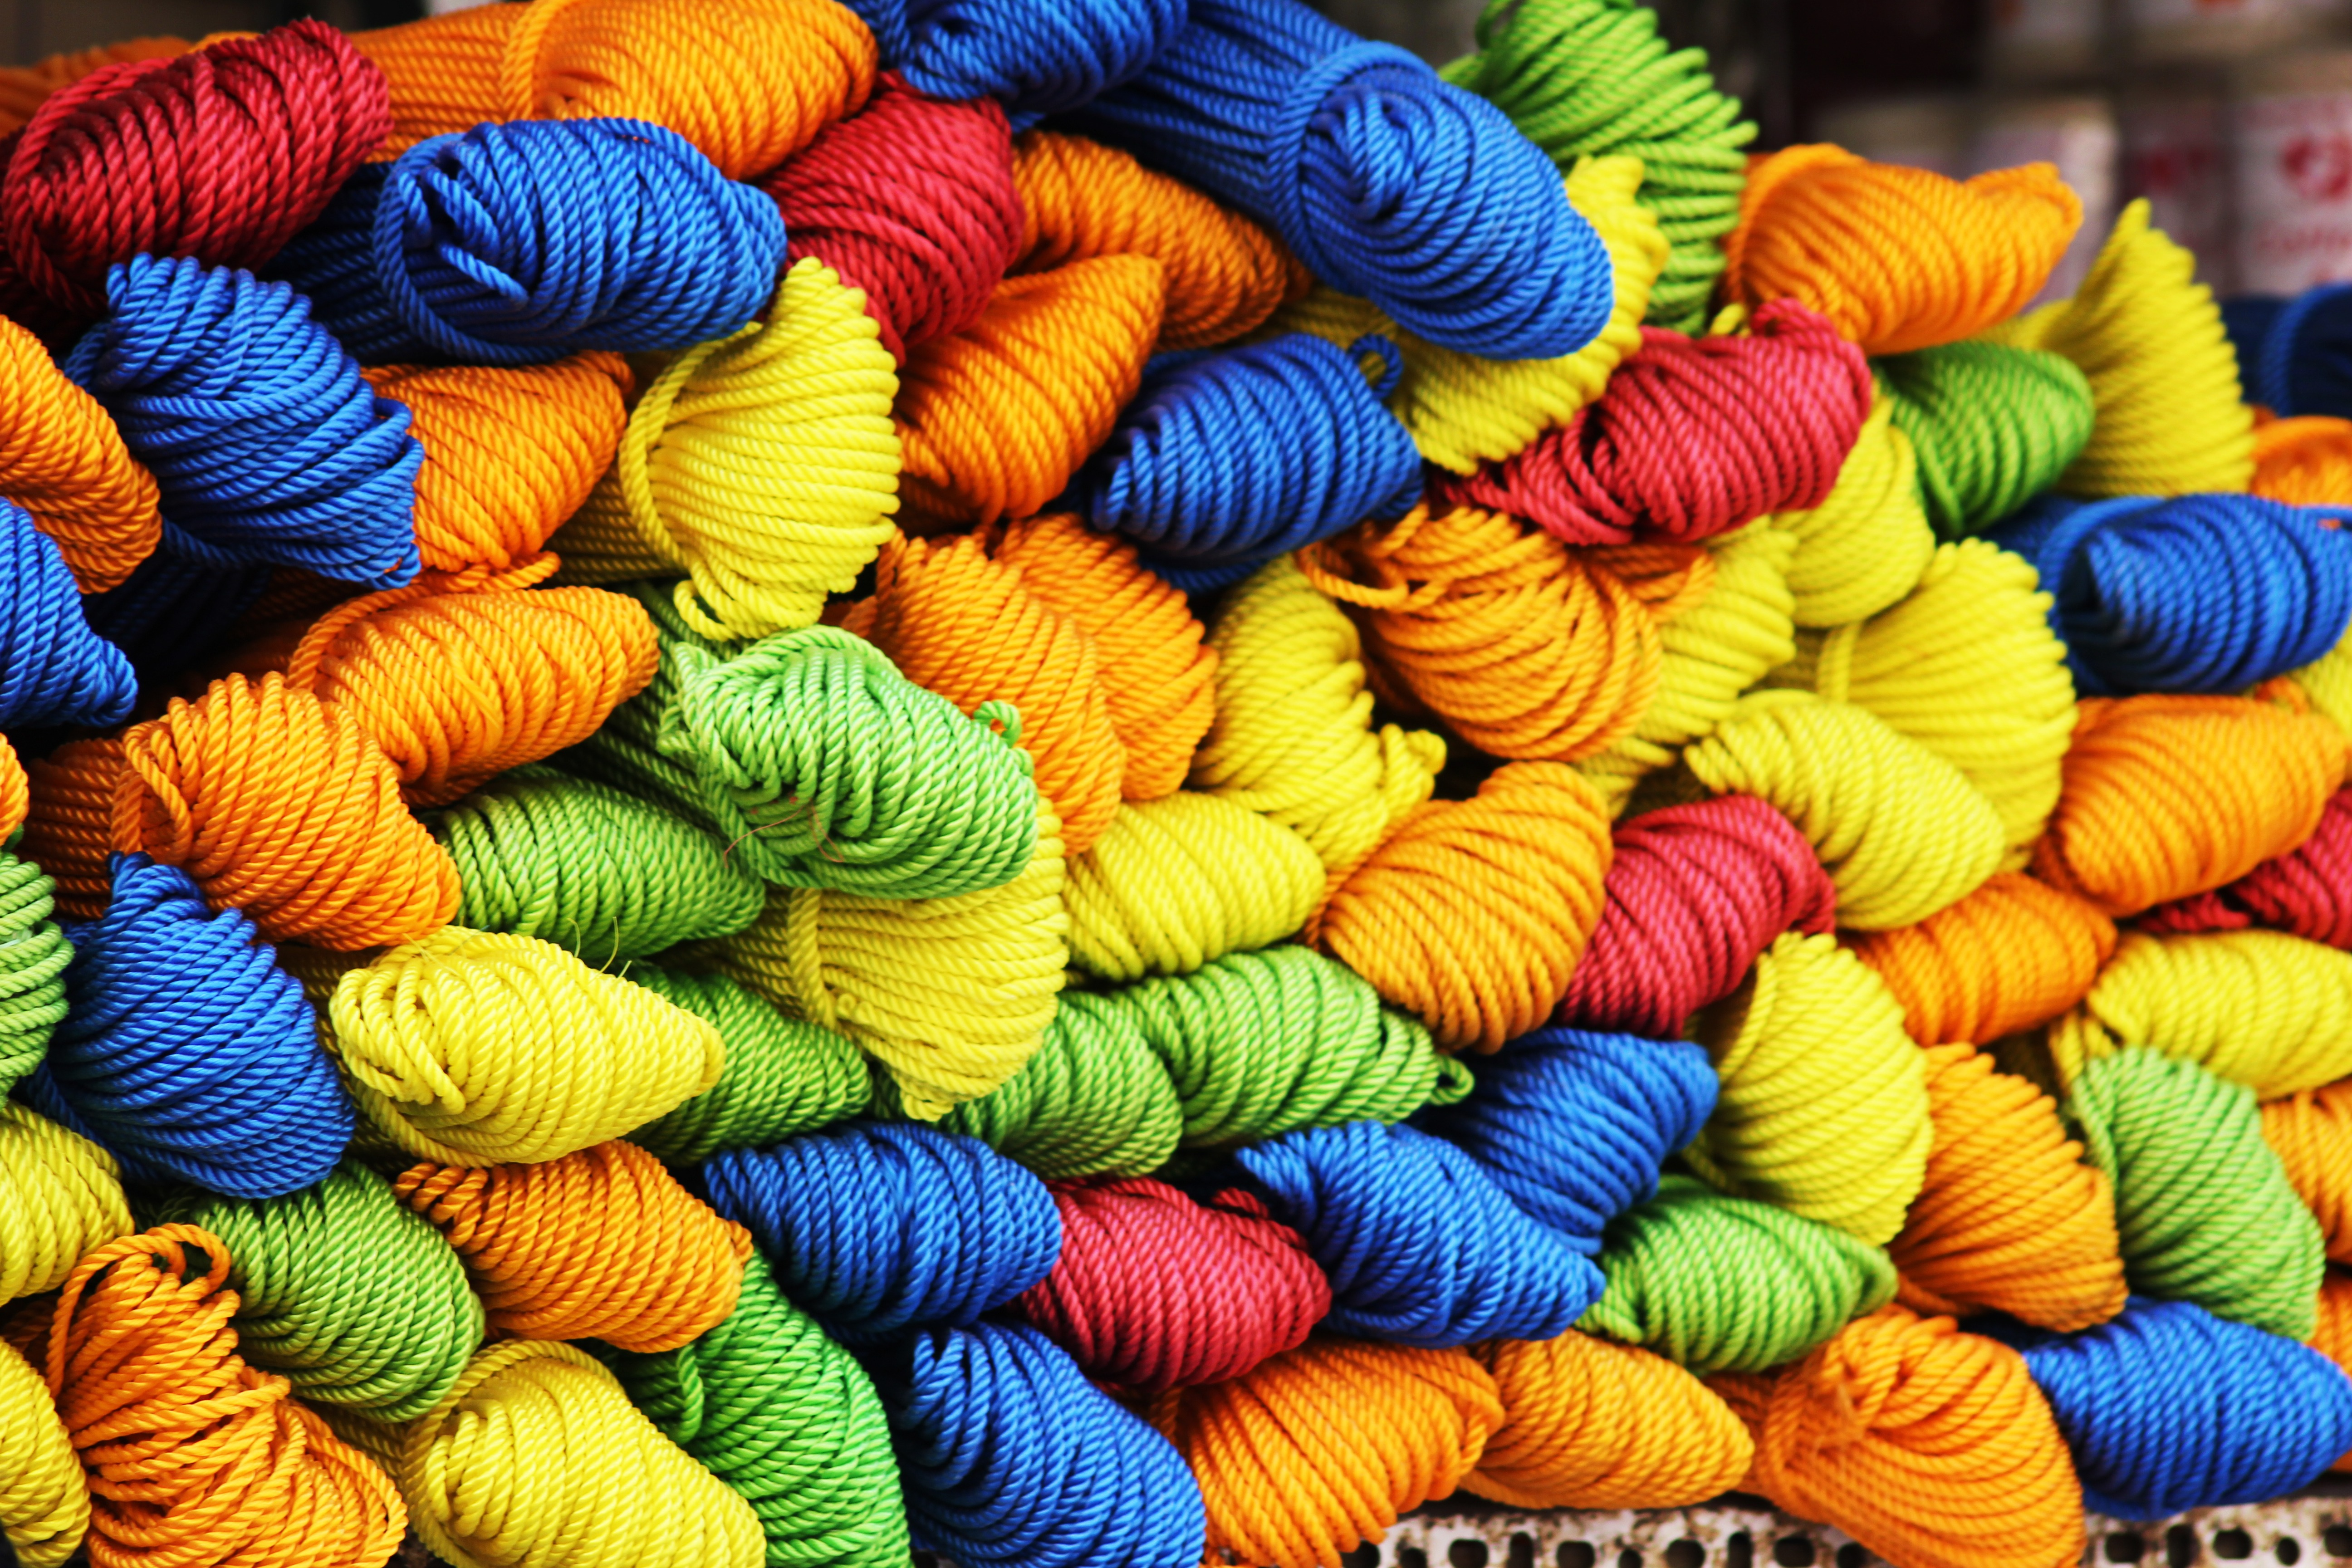 52763 download wallpaper Multicolored, Miscellanea, Miscellaneous, Motley, Threads, Thread, Yarn screensavers and pictures for free